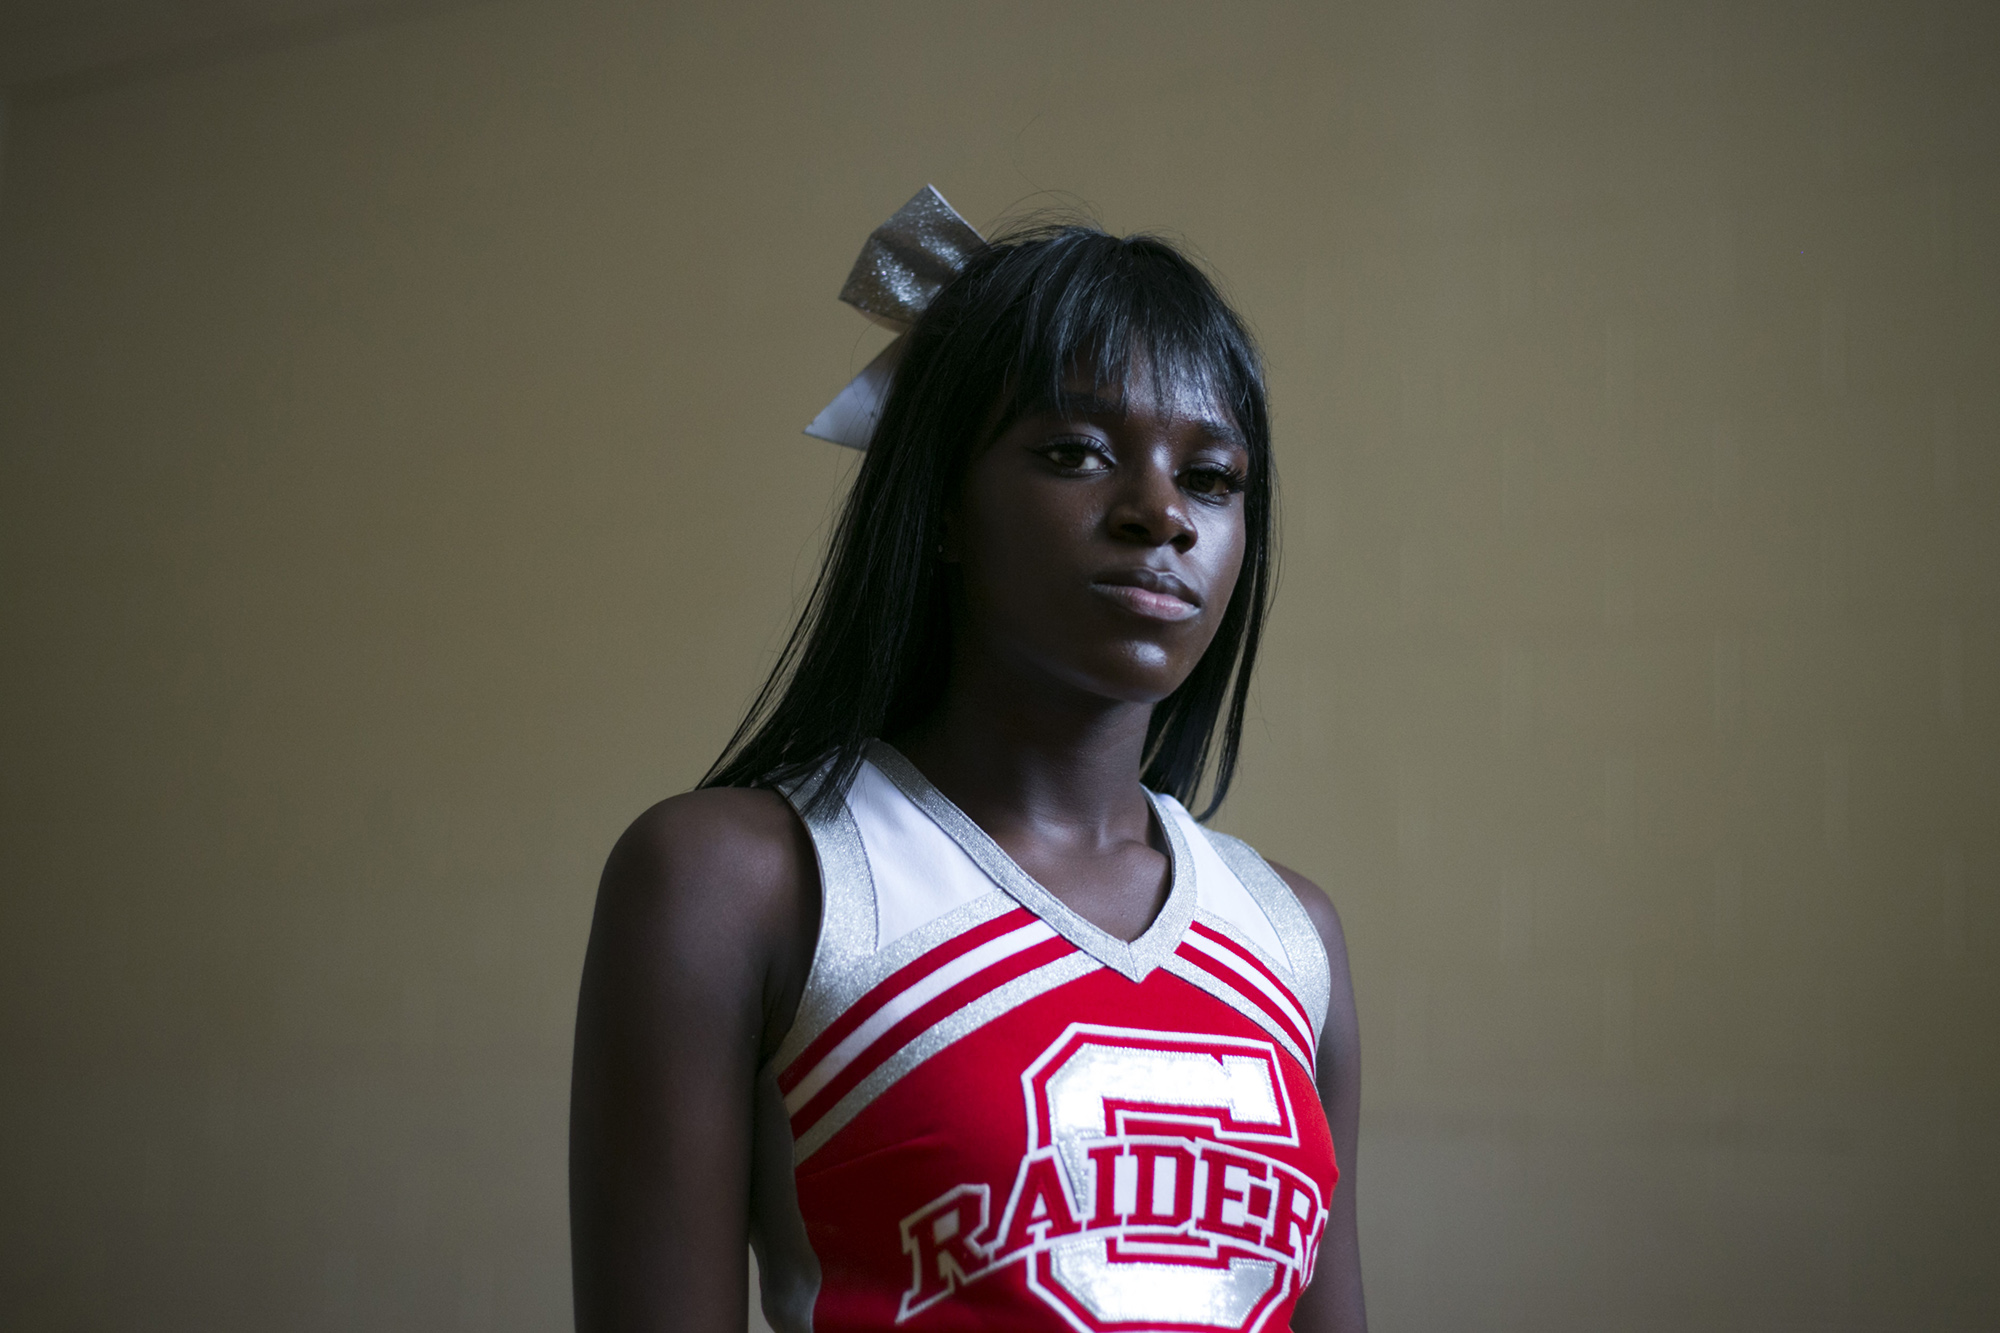 London Gladden, 17, during cheerleading practice at the High School of Commerce in Springfield, Mass., on Friday, September, 8, 2017. (Brittany Greeson/GroundTruth)